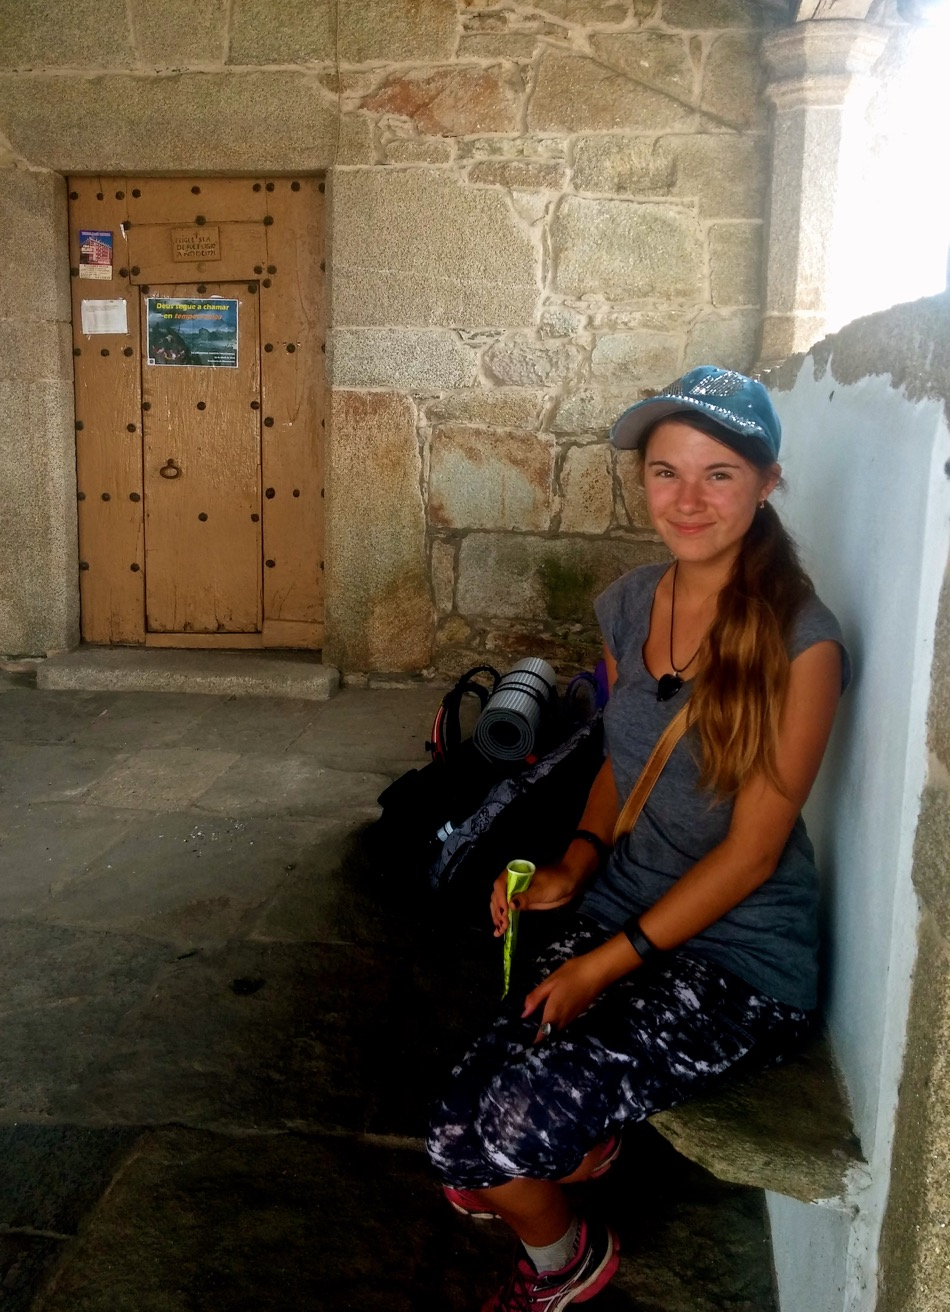 Reka resting at 18th century Galician church with Icy pole